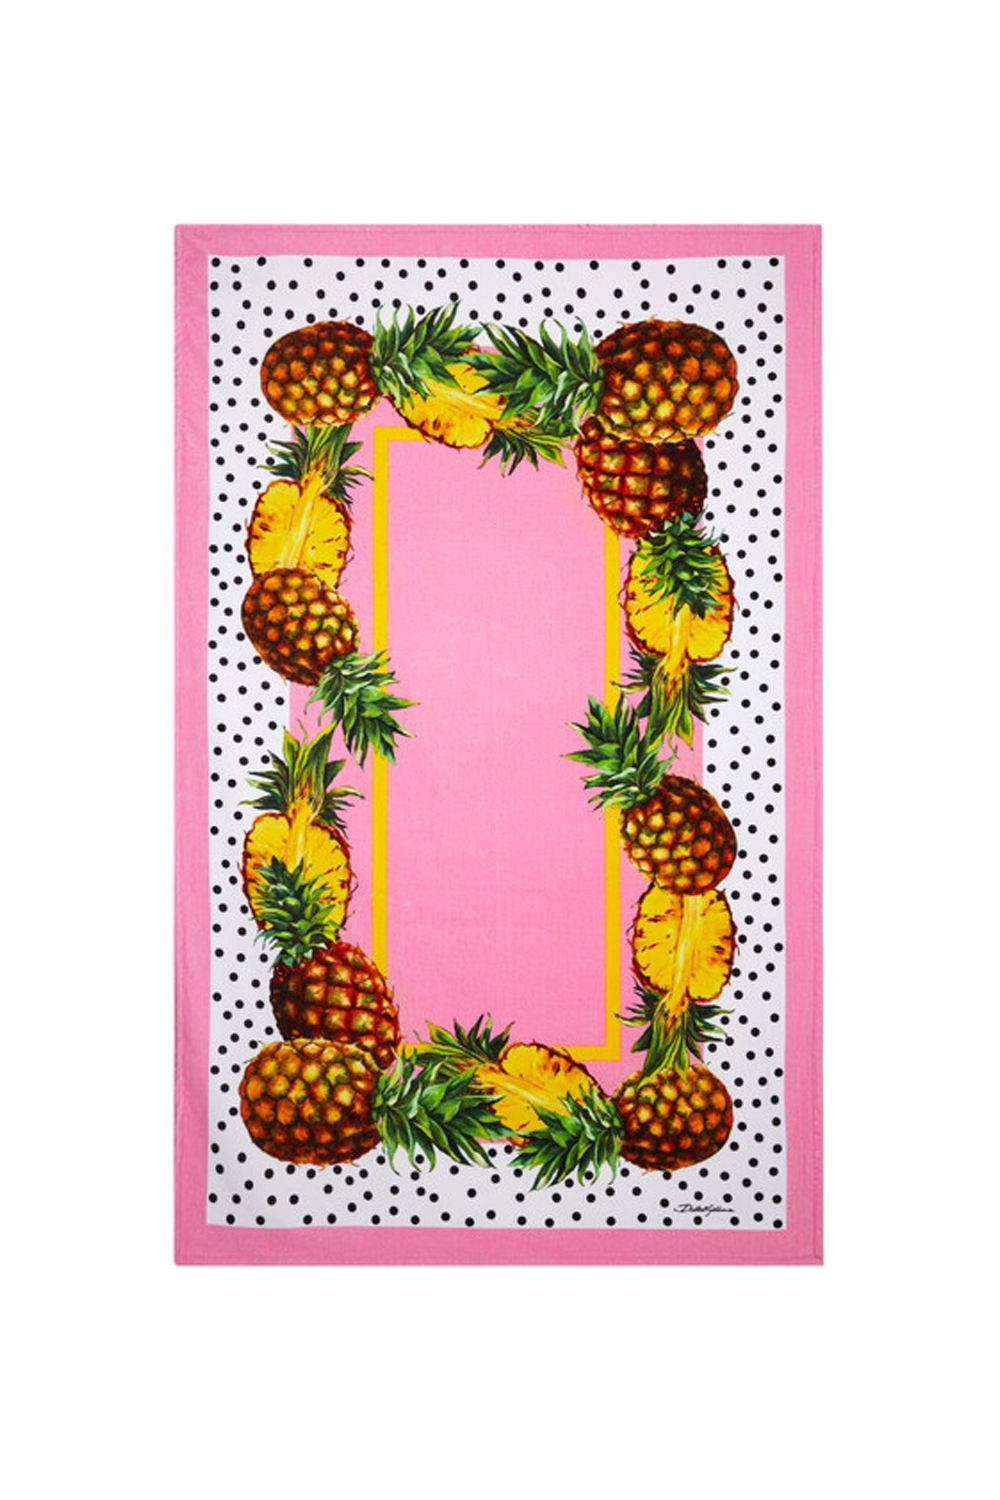 "<p><span>What it would look like if at the design pitch meeting, D&G compiled a list of pretty things and piled it all on one beach towel (millennial pink, pineapples, polka dots, check, check, check).</span></p><p><strong data-redactor-tag=""strong"">Dolce & Gabbana Printed Cotton Terry Towel, $423; <a href=""https://www.net-a-porter.com/us/en/product/807925/Dolce_and_Gabbana/printed-cotton-terry-towel"" target=""_blank"" data-tracking-id=""recirc-text-link"">net-a-porter.com</a>.</strong></p>"